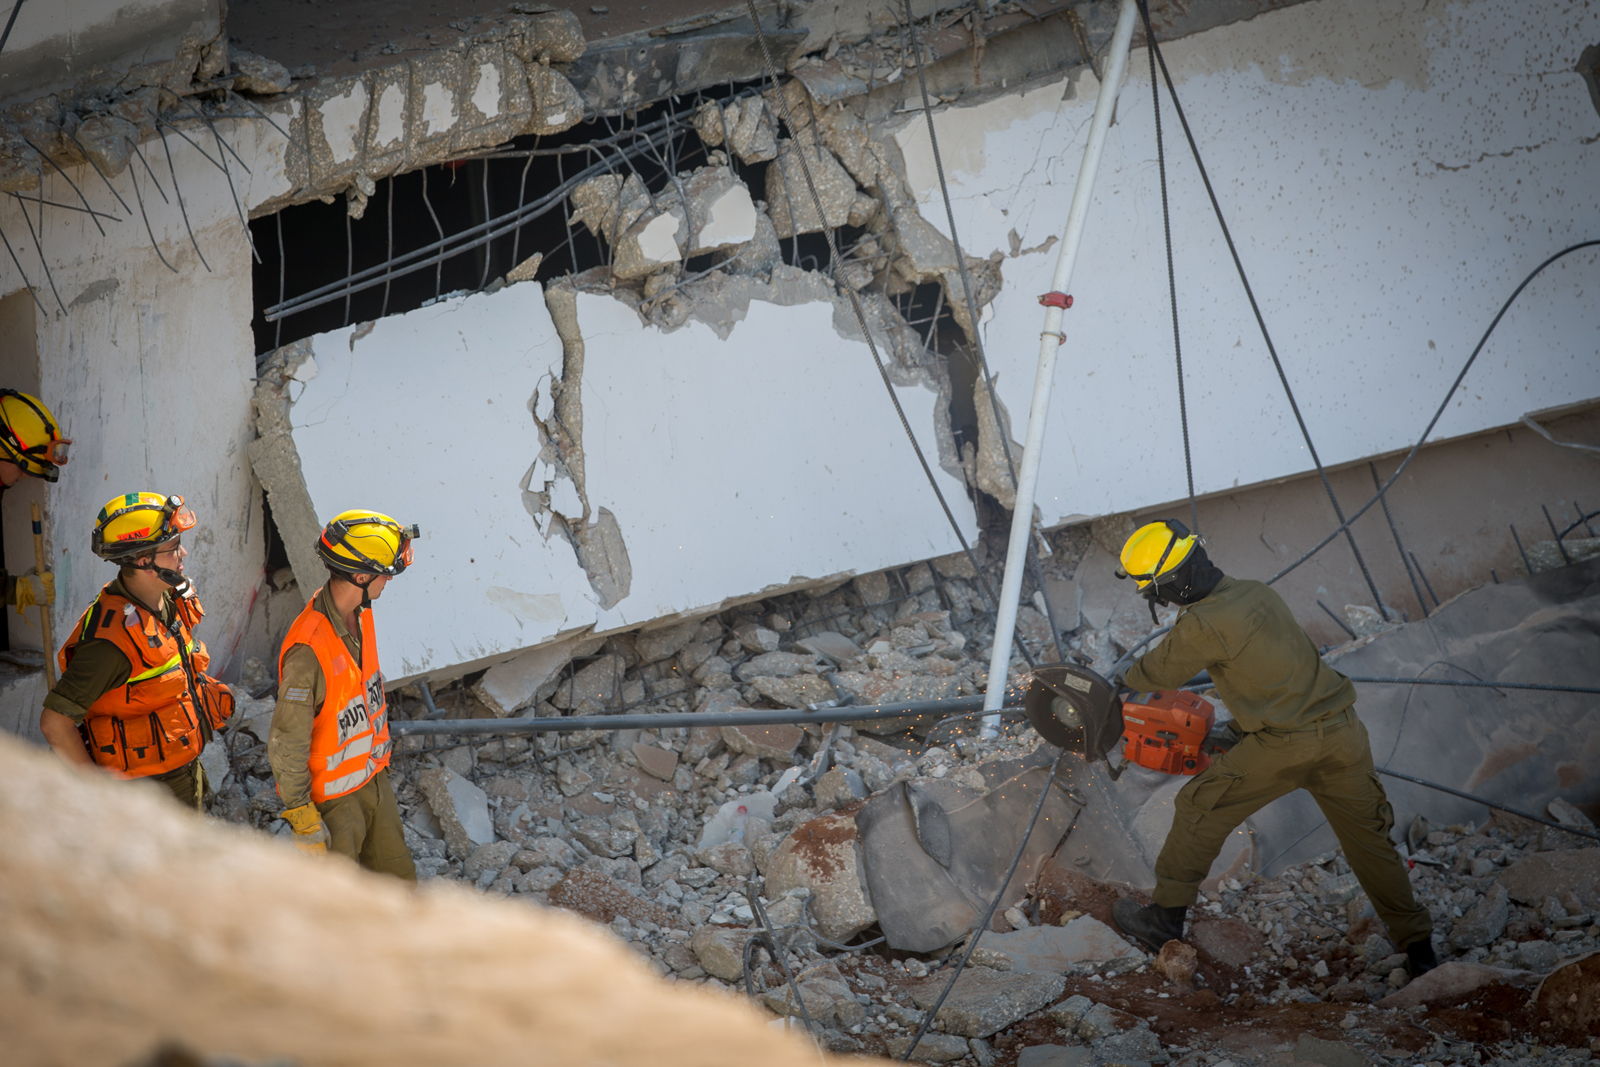 Rescue workers race against time to save construction workers trapped under the rubble and sand of the collapsed Tel Aviv parking garage. Photo by Yonatan Sindel/Flash90